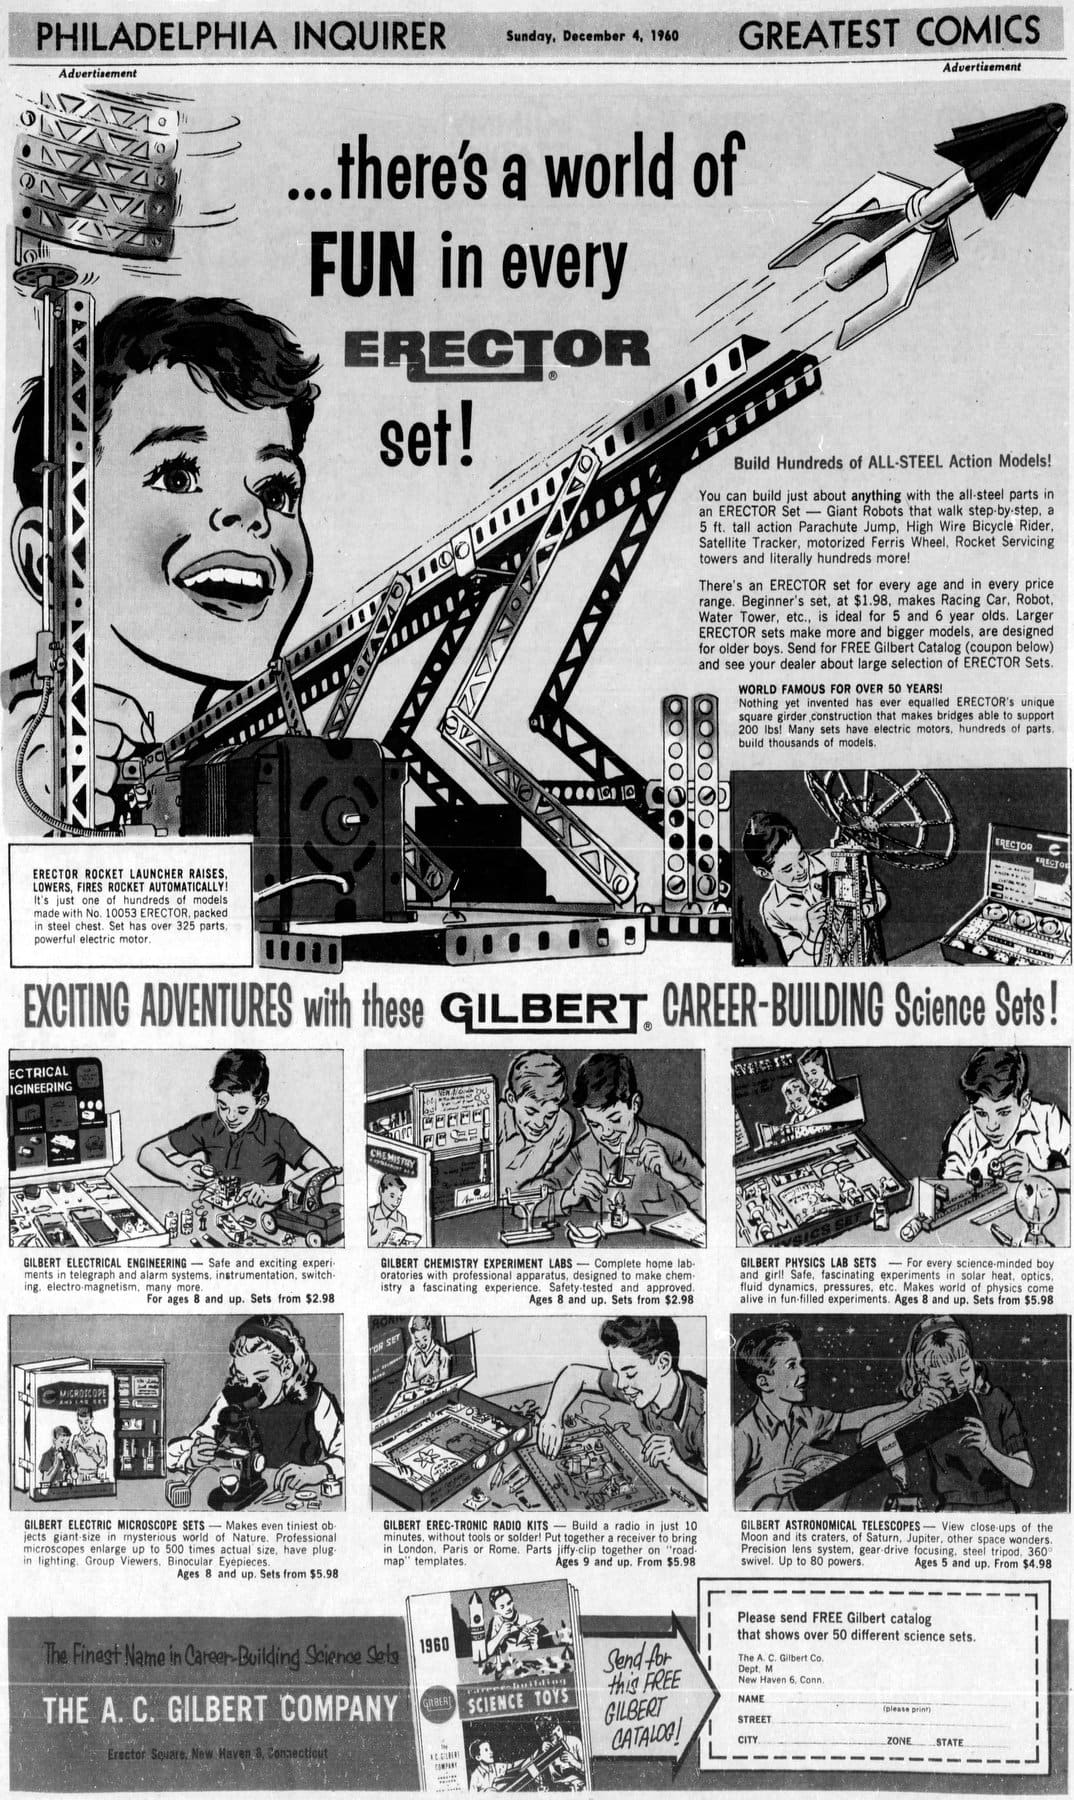 Erector Set in the comics section of the newspaper (1960)